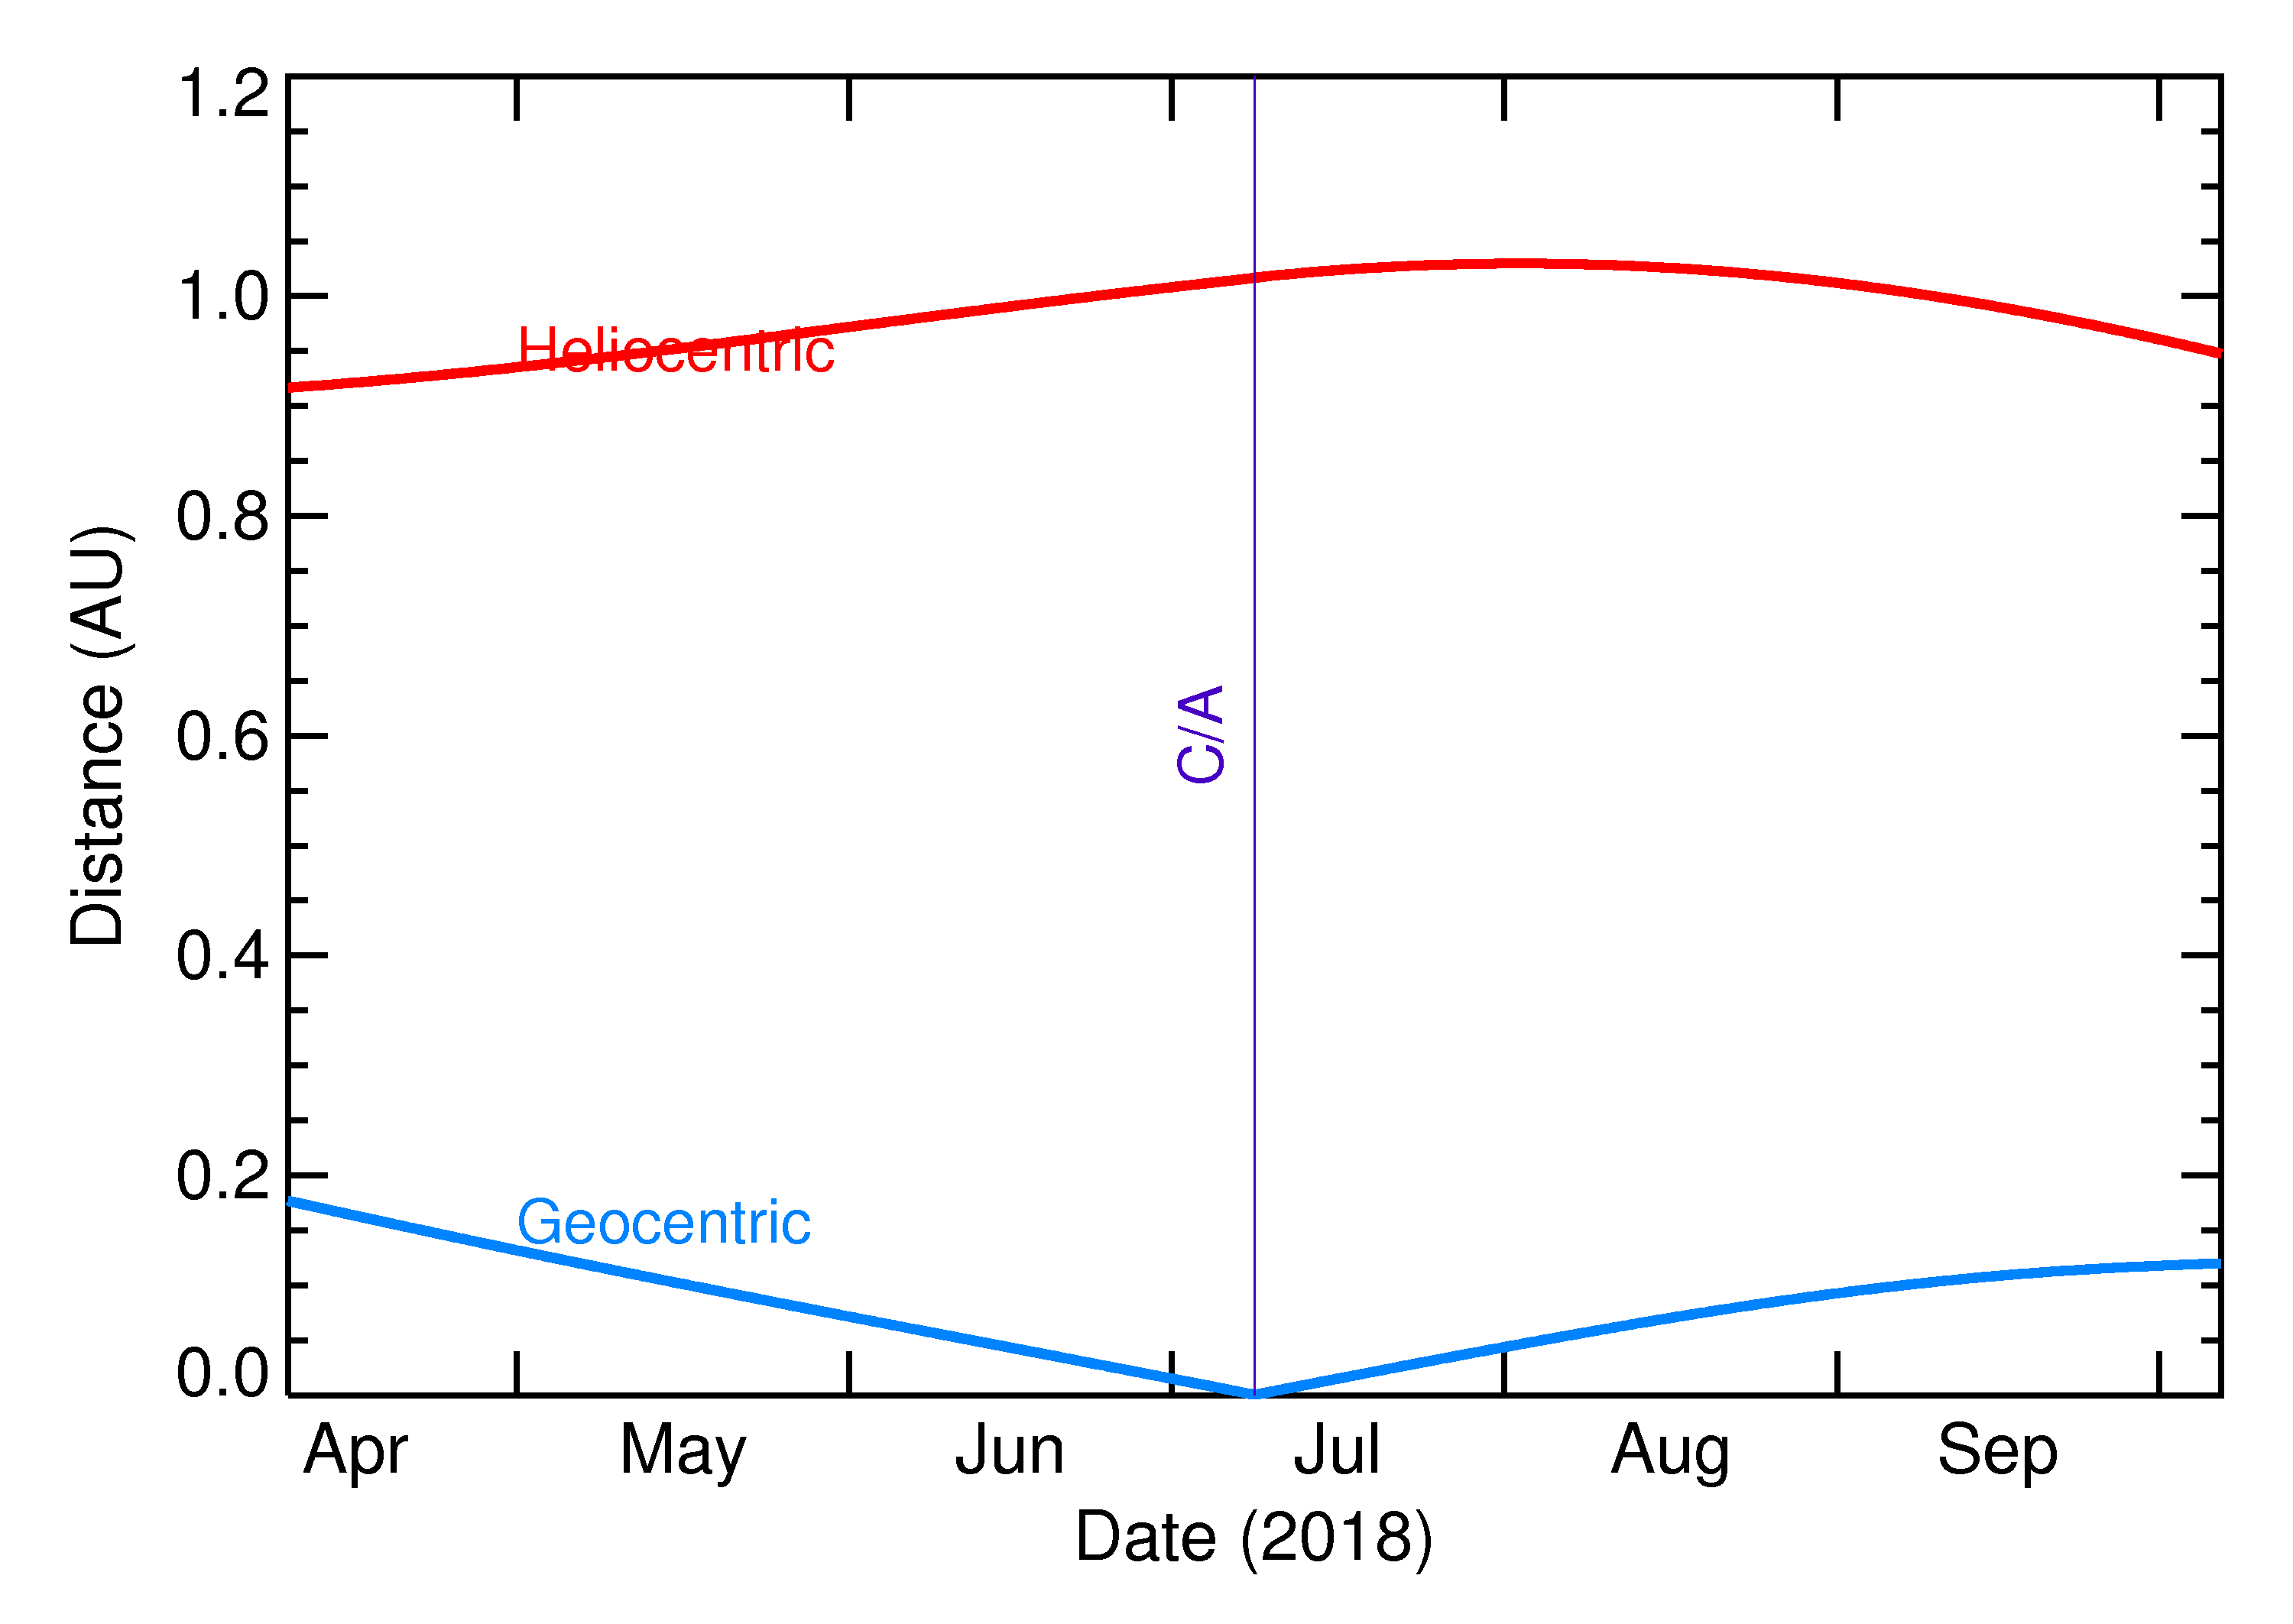 Heliocentric and Geocentric Distances of 2018 NX in the months around closest approach